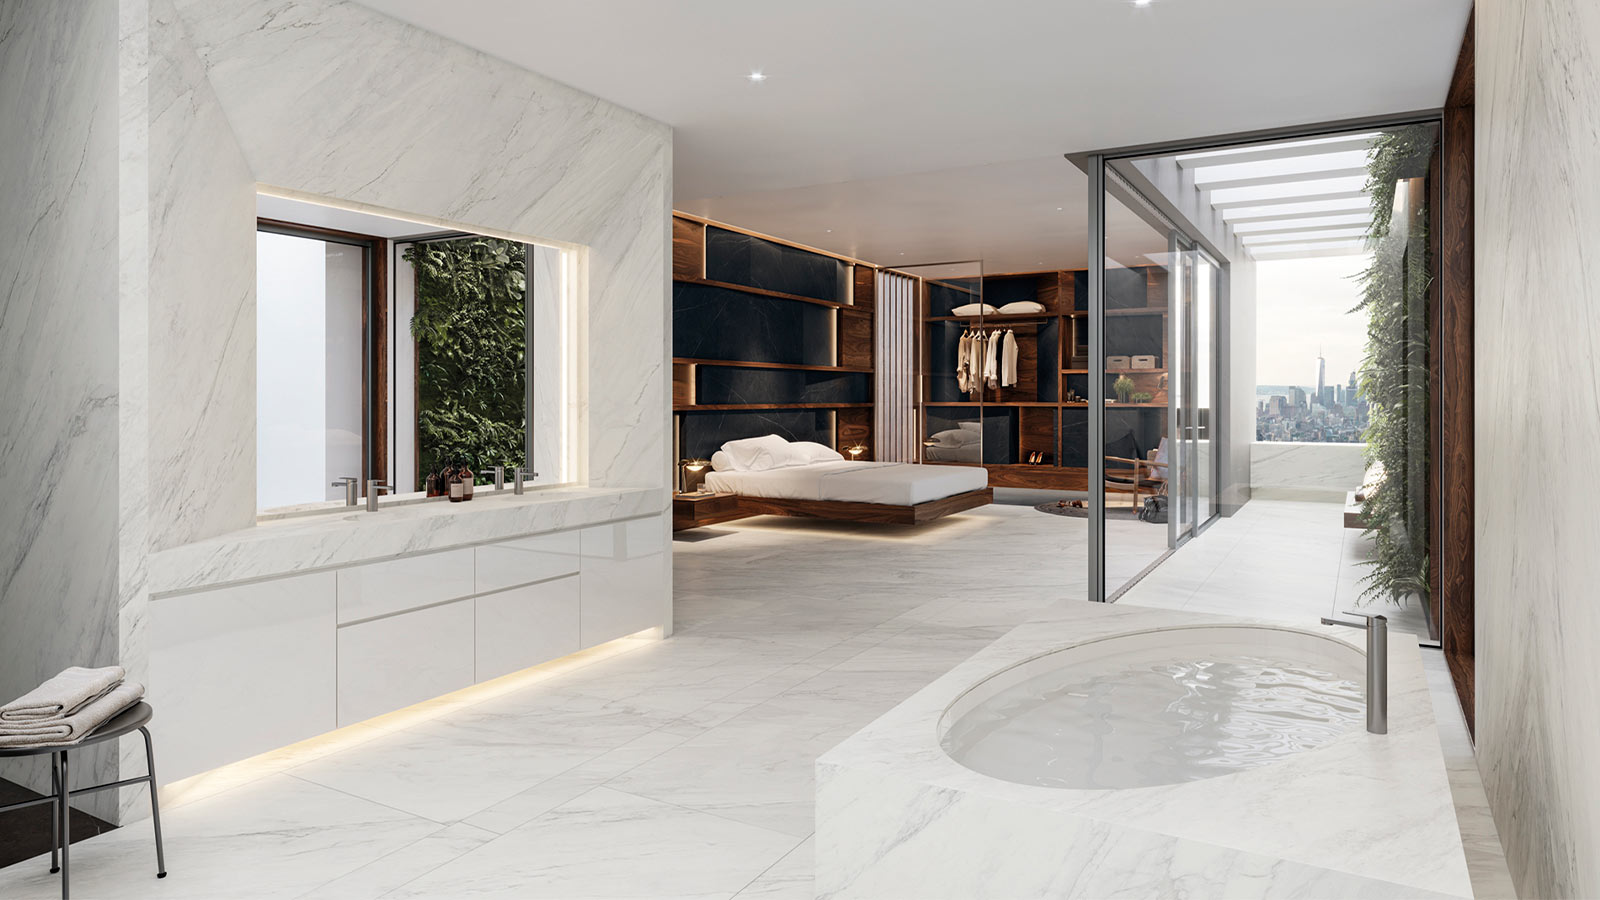 XTone Glem White Nature Tailored Design Urbatek Porcelanosa 2